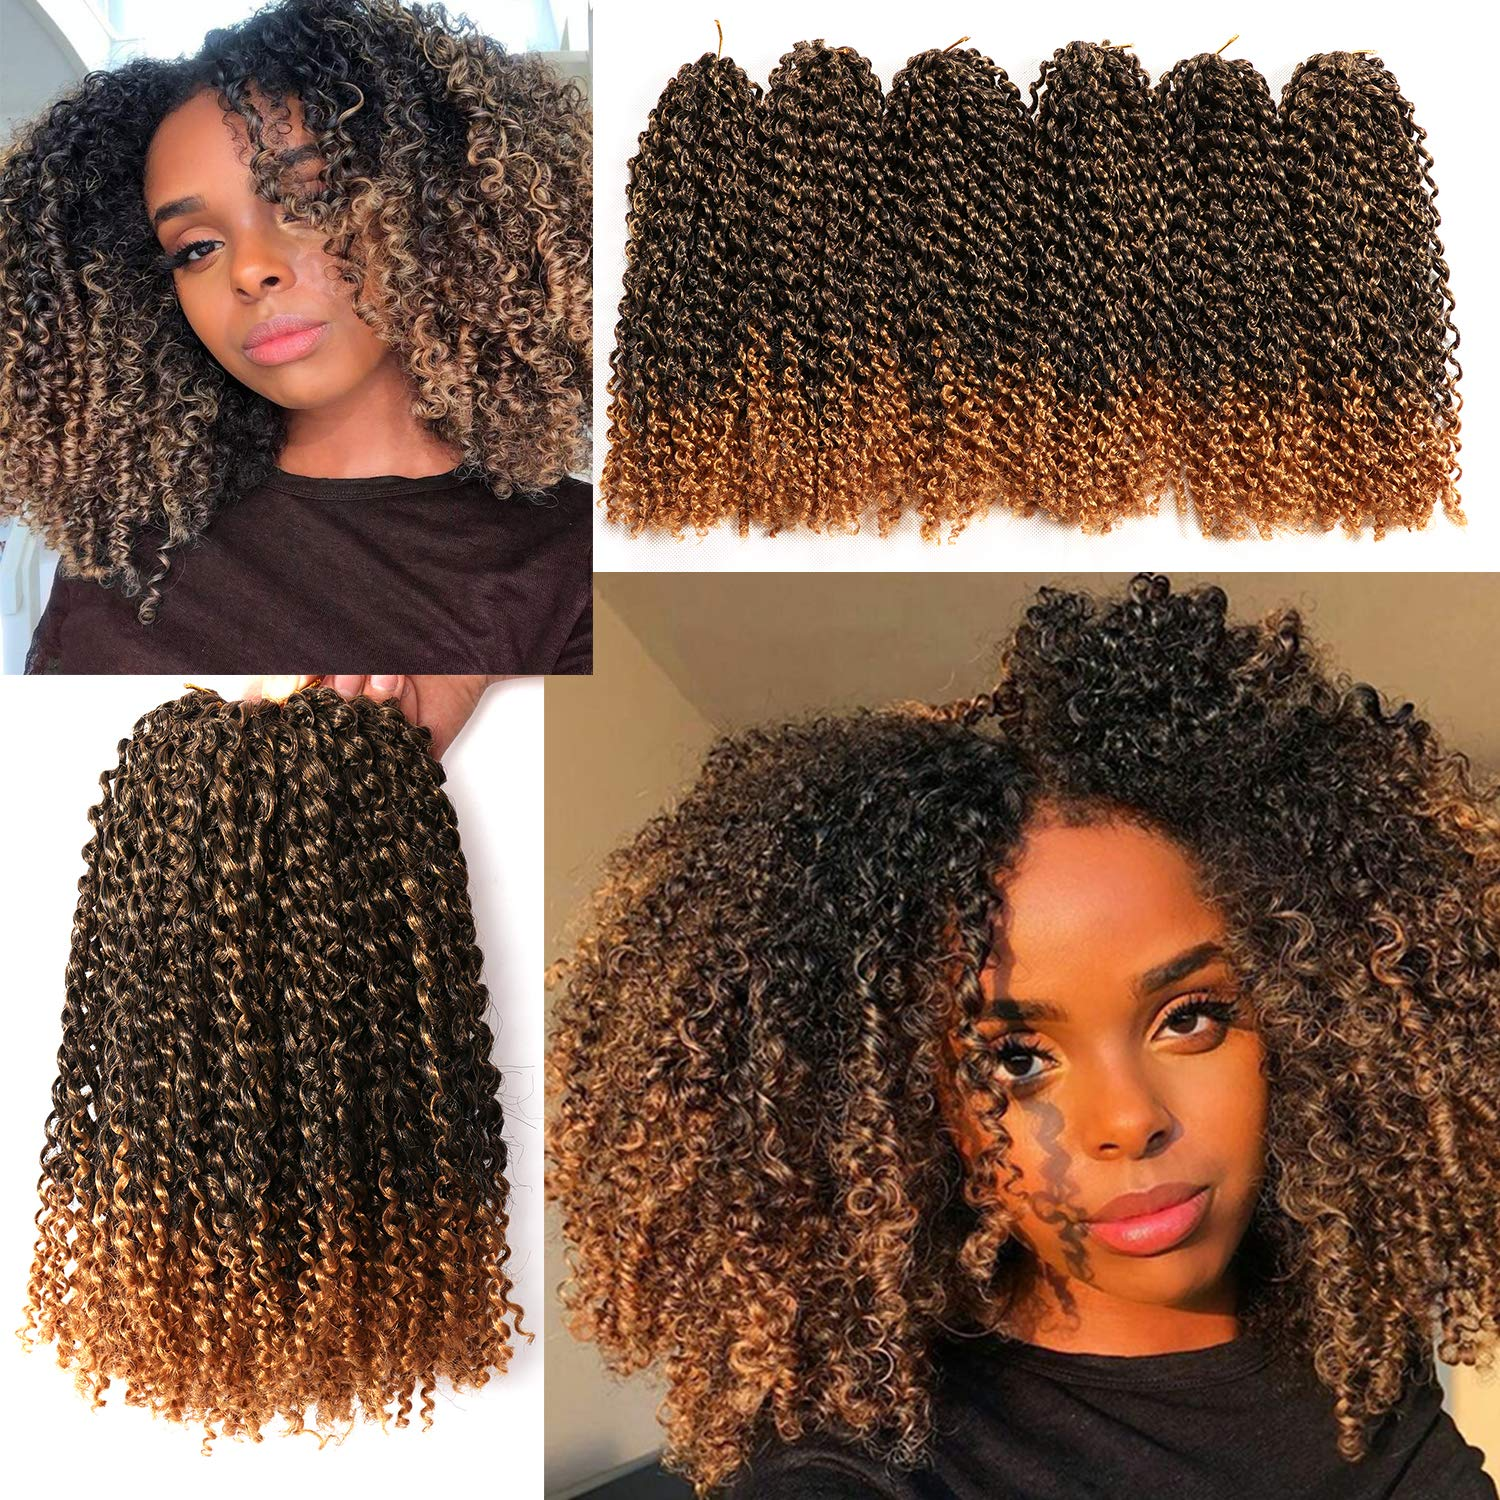 Amazon Com 12 Inch Marlybob Crochet Hair 6 Small Bundles Kinky Twist Crochet Hair Crochet Braids Jerry Curly Crochet Hair Extensions Kinky Curly Crochet Hair Ombre Synthetic Braiding Hair 1b 27 Beauty